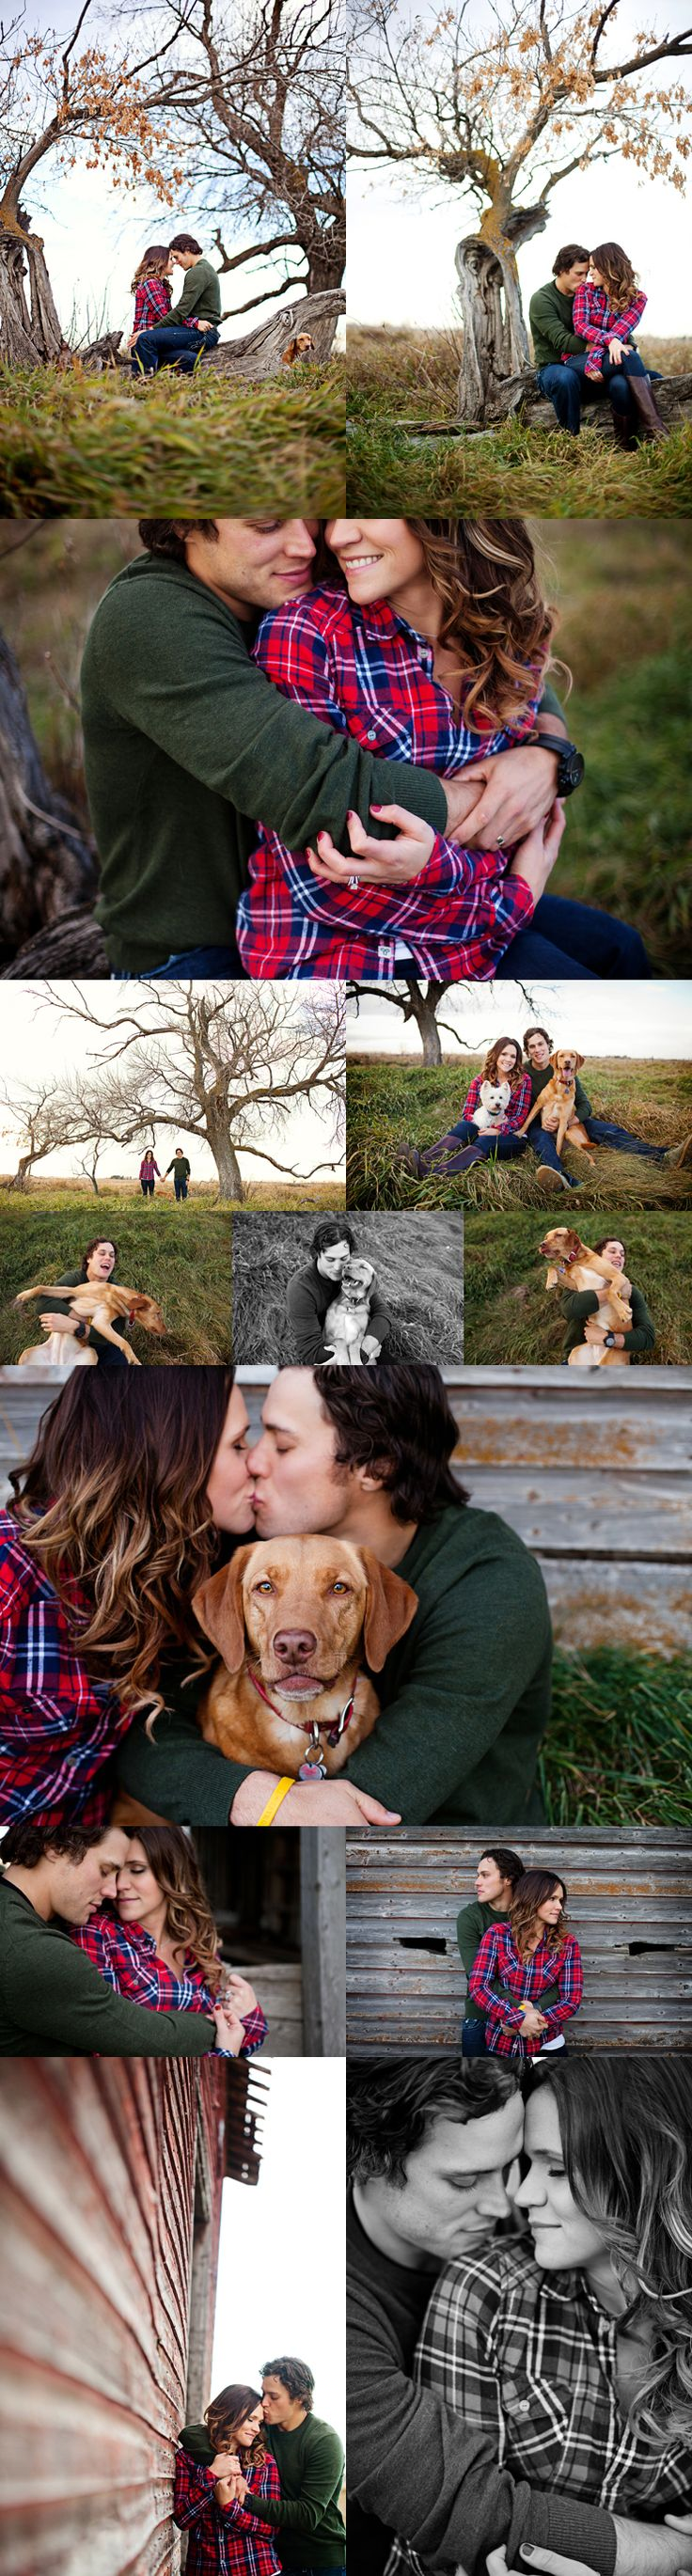 Such a cute engagement shoot! I LOVE LOVE LOVE this....,its so comfortable and cute.